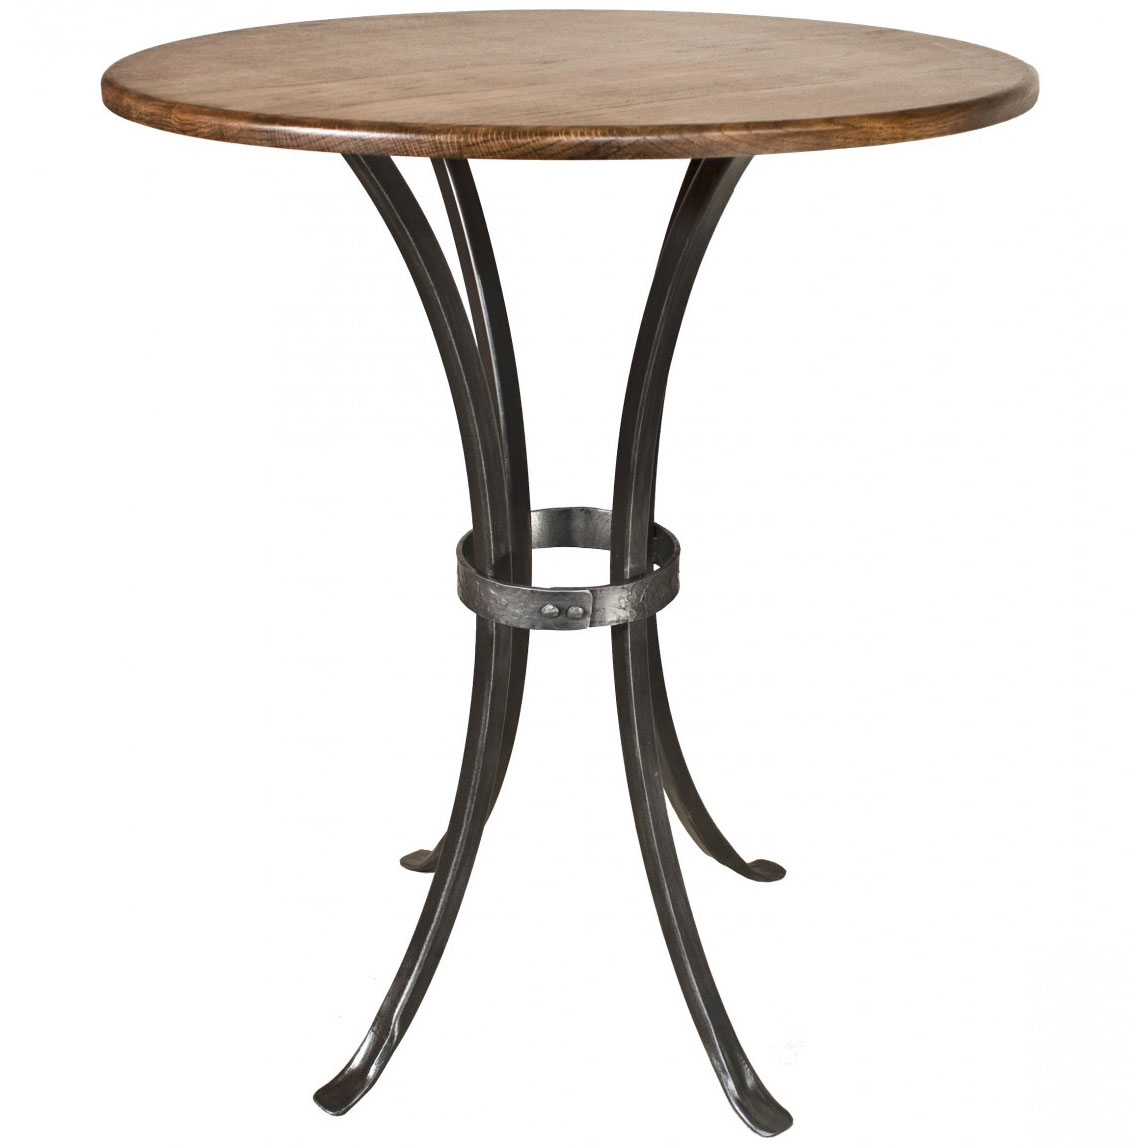 Montage Bar Height Table With In Round Top - 30 inch table base